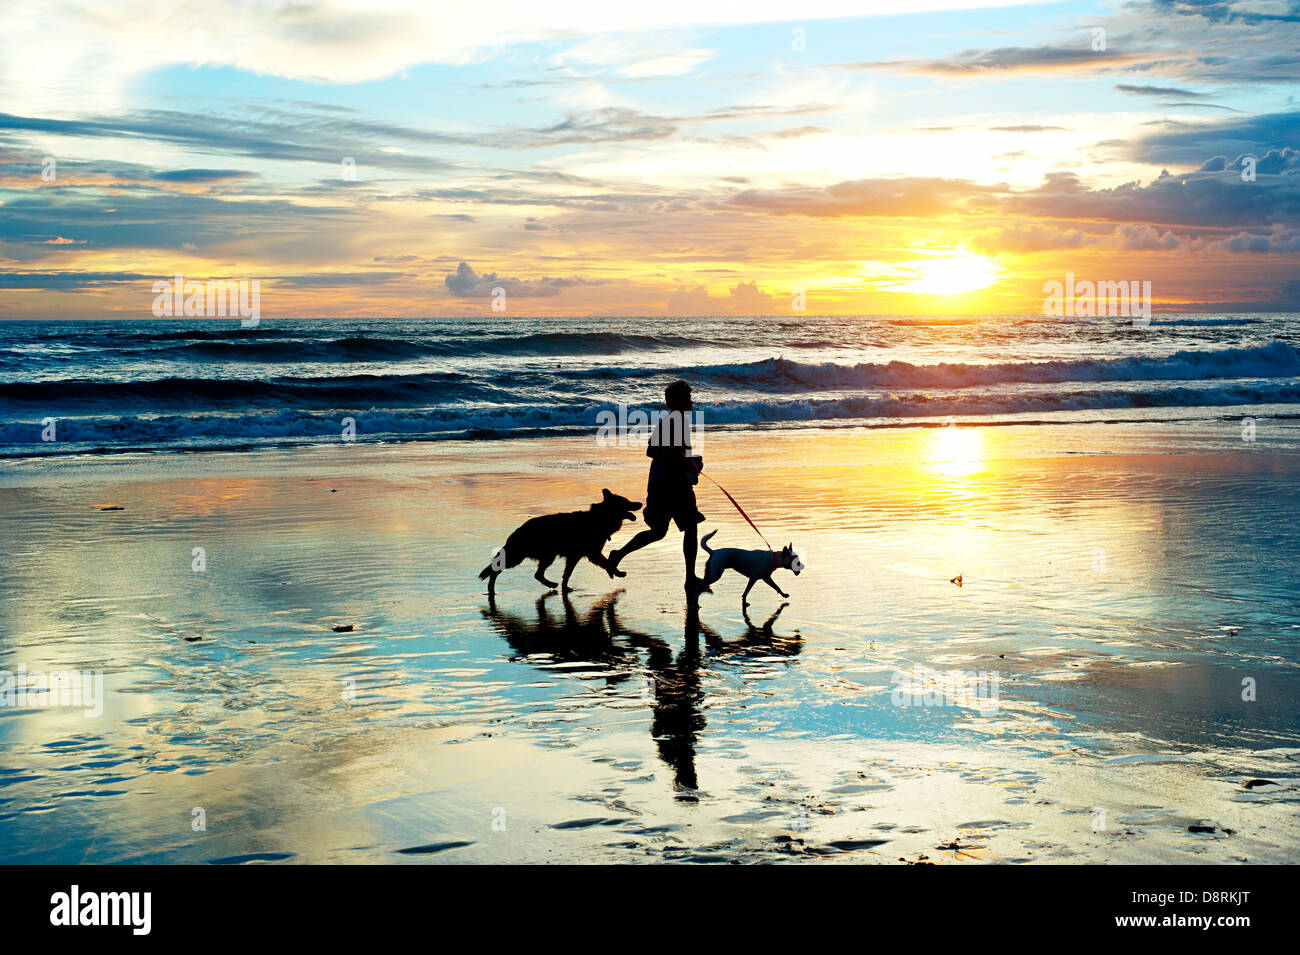 Man with a dogs running on the beach at sunset. Bali island, Indonesia Stock Photo